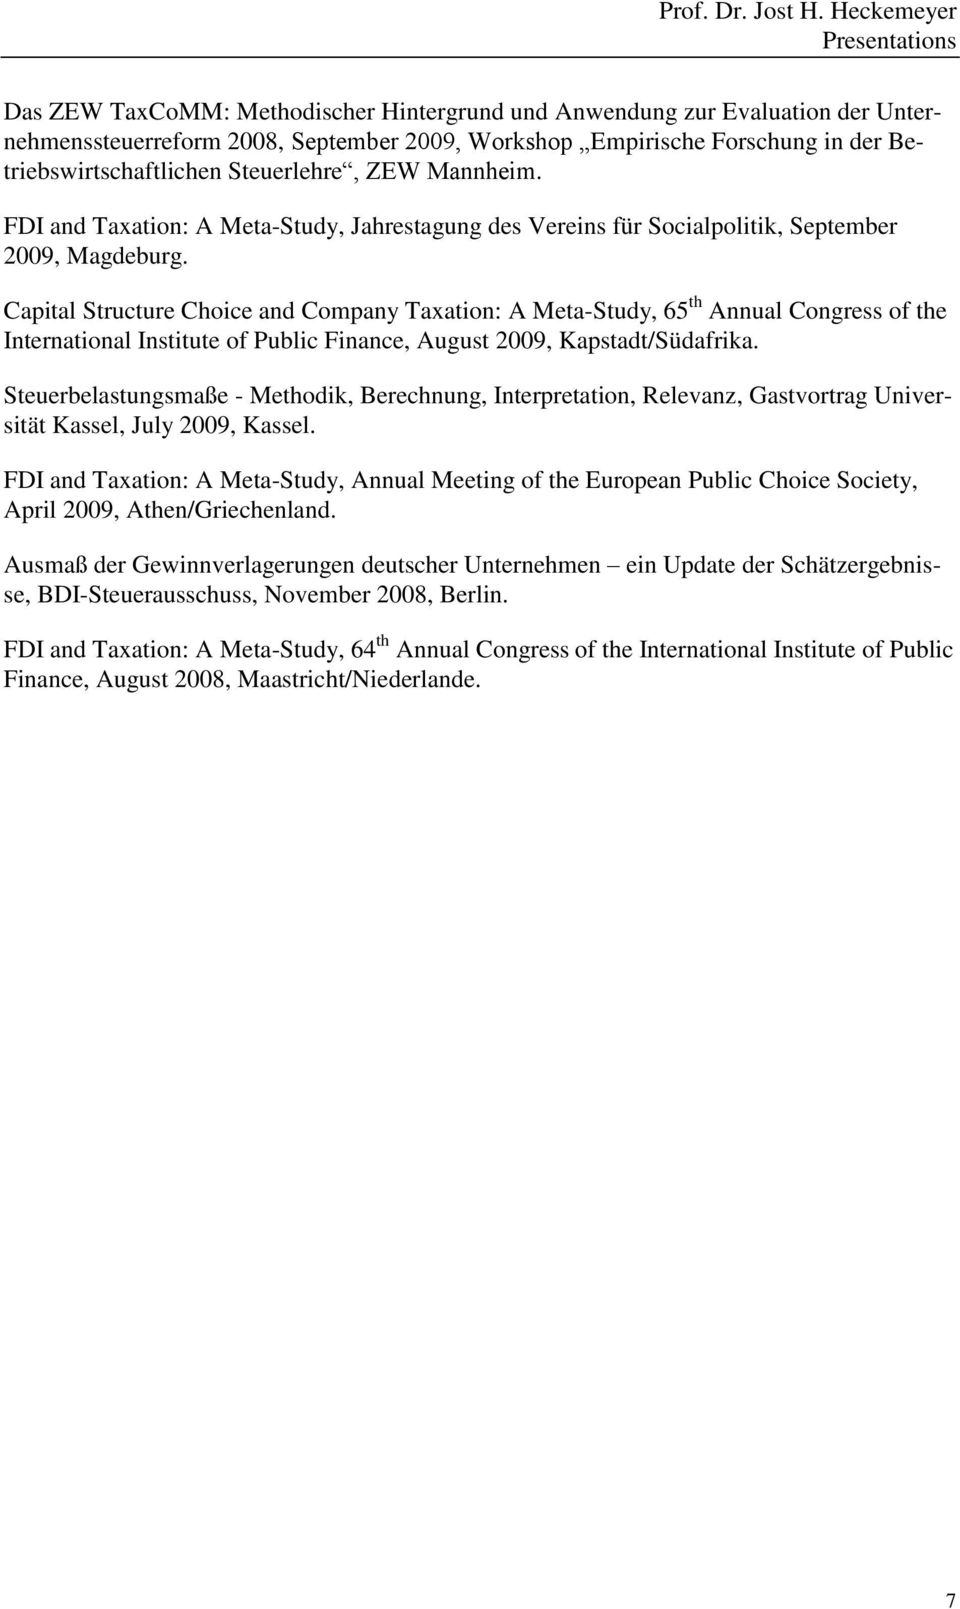 Capital Structure Choice and Company Taxation: A Meta-Study, 65 th Annual Congress of the International Institute of Public Finance, August 2009, Kapstadt/Südafrika.